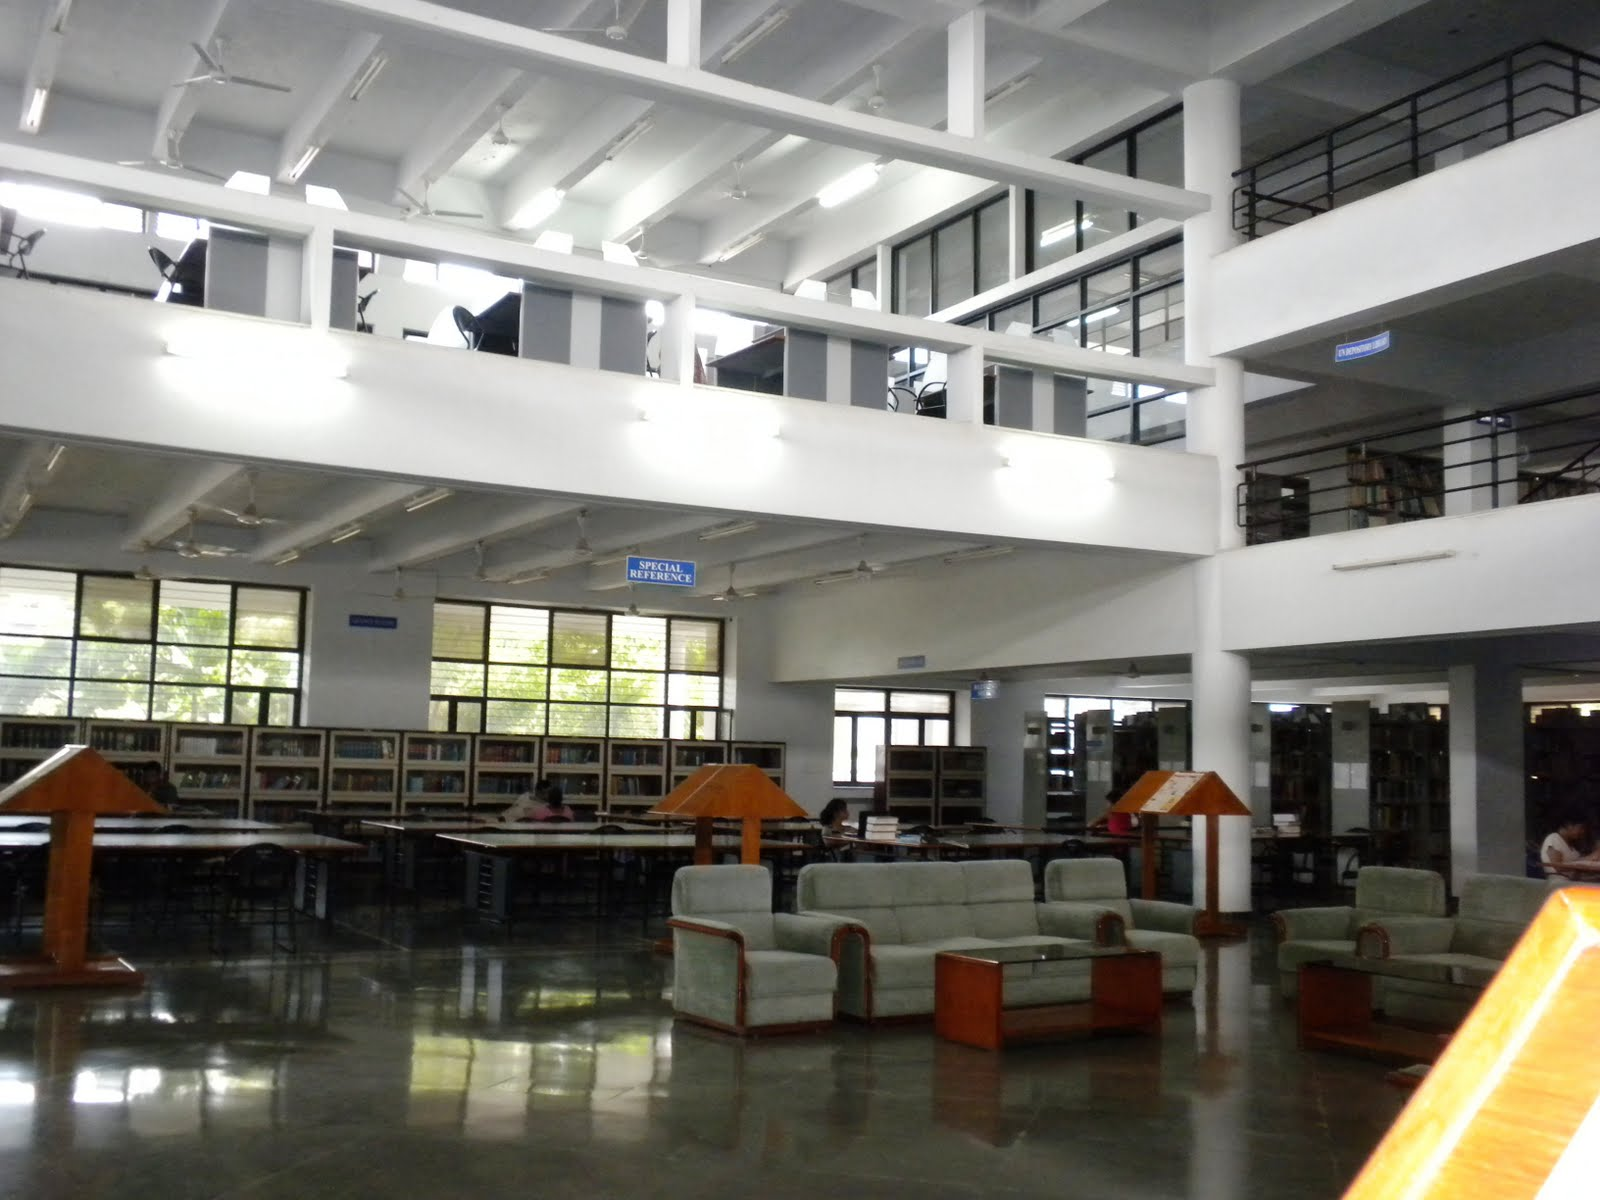 nalsar library, internship